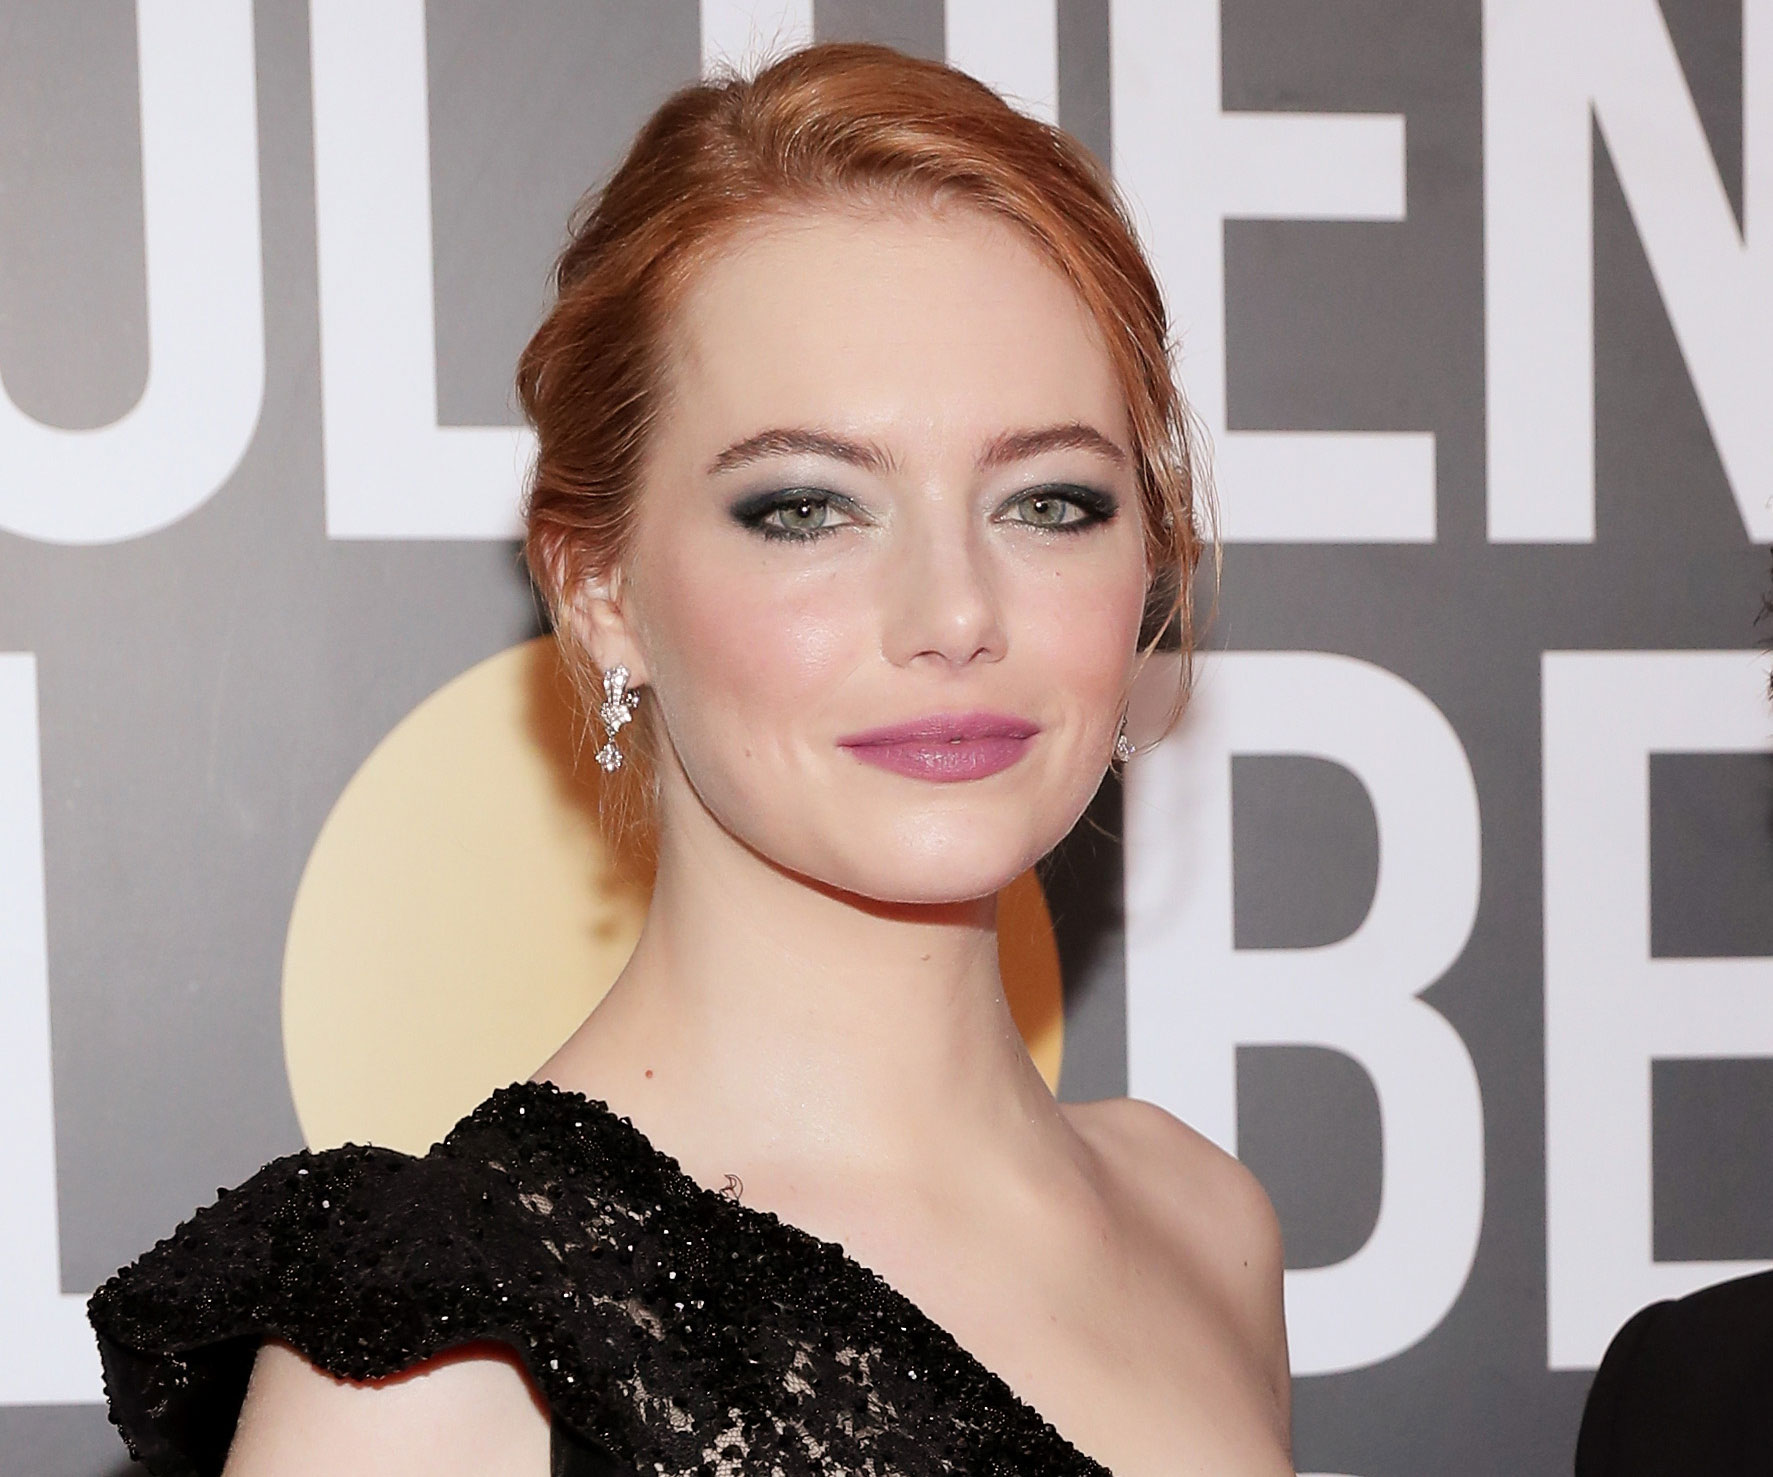 Emma Stone's Golden Globe Makeup Had A Hidden Meaning